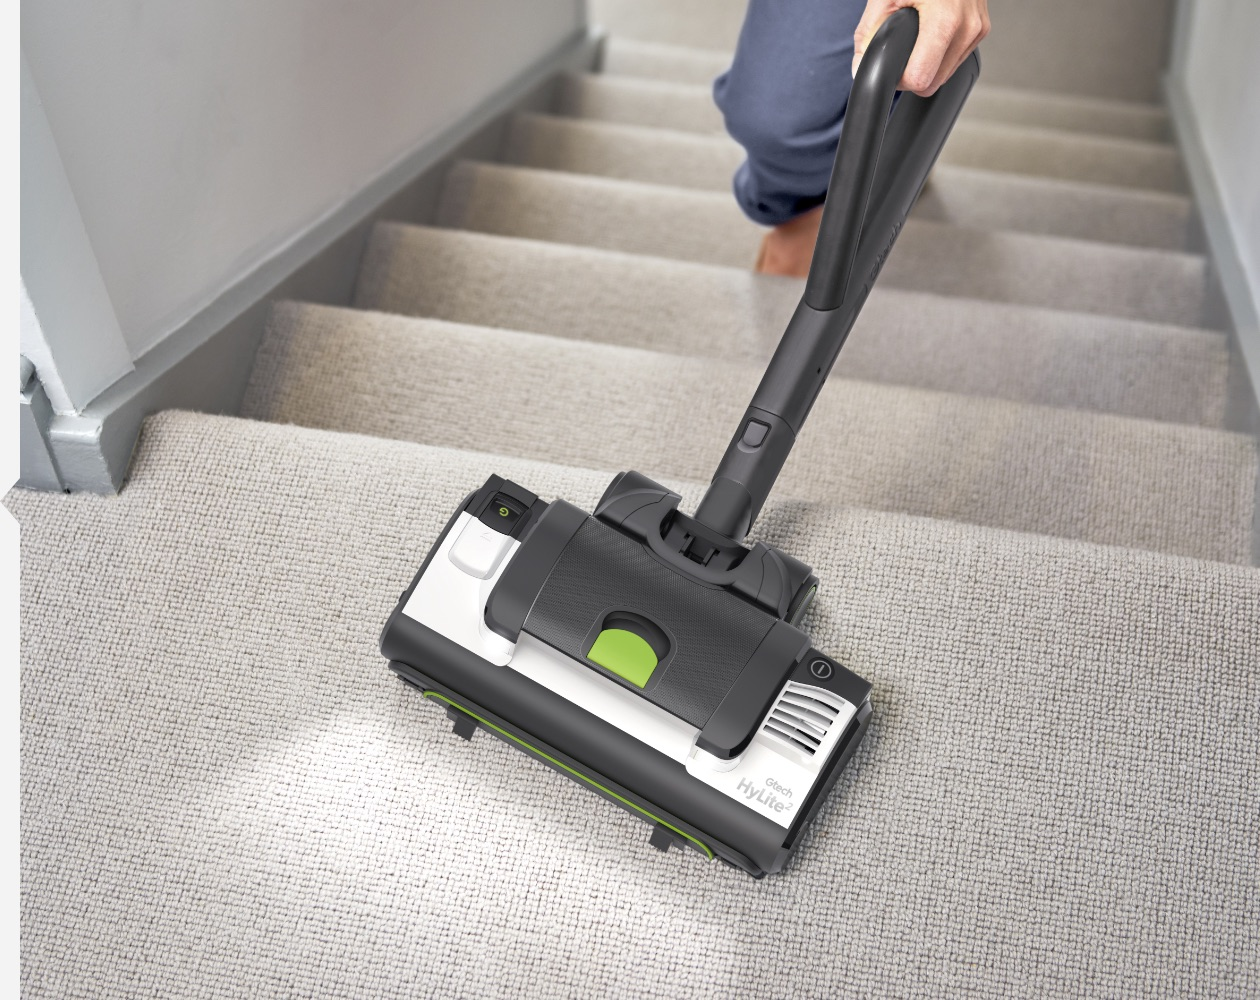 HyLite 2 small vacuum cleaner